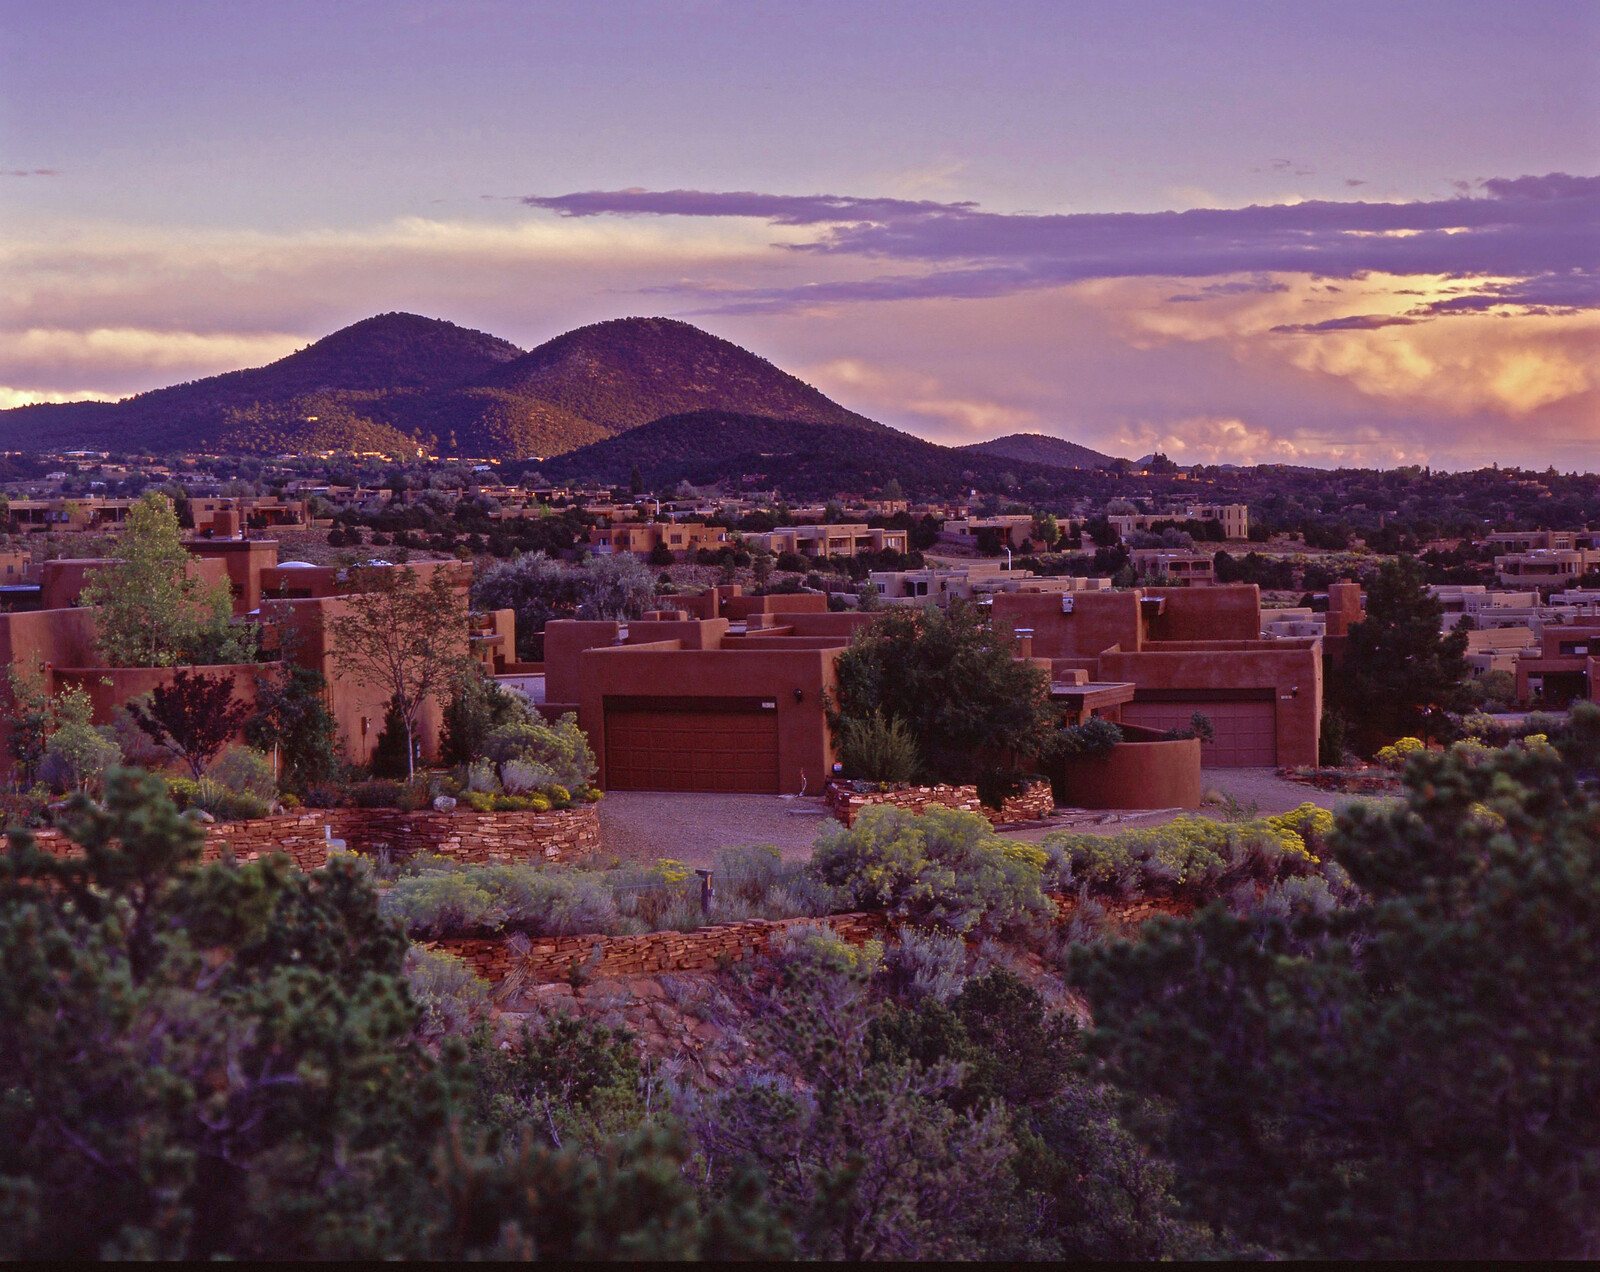 Sunset over the adobe style buildings in Santa Fe...with foot hills in the background